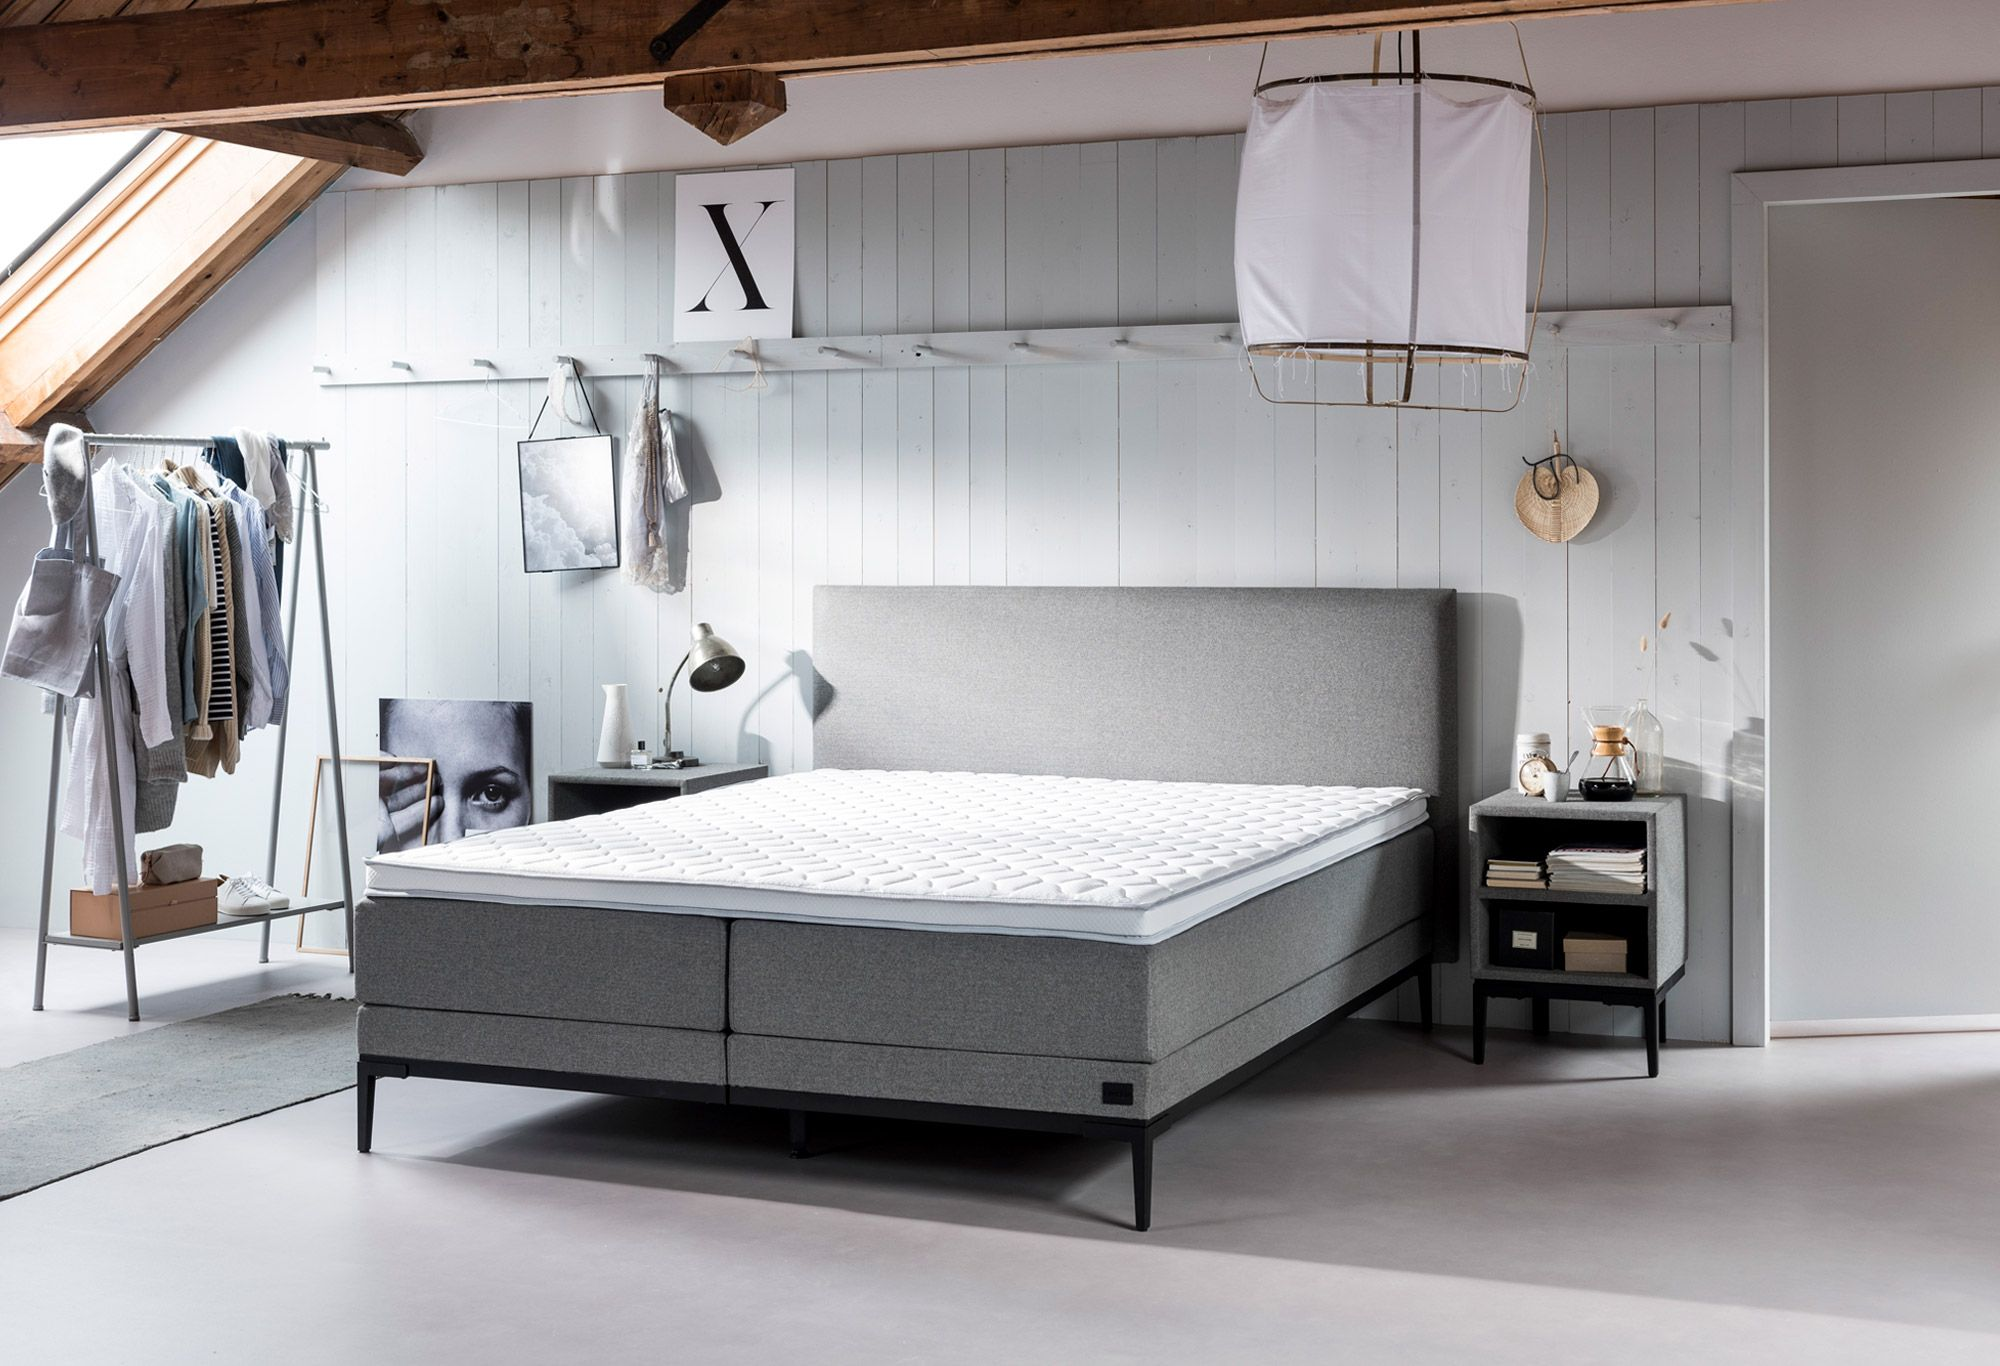 Boxspring Lifestyle By Vtwonen Thyme In 2020 Slaapkamer